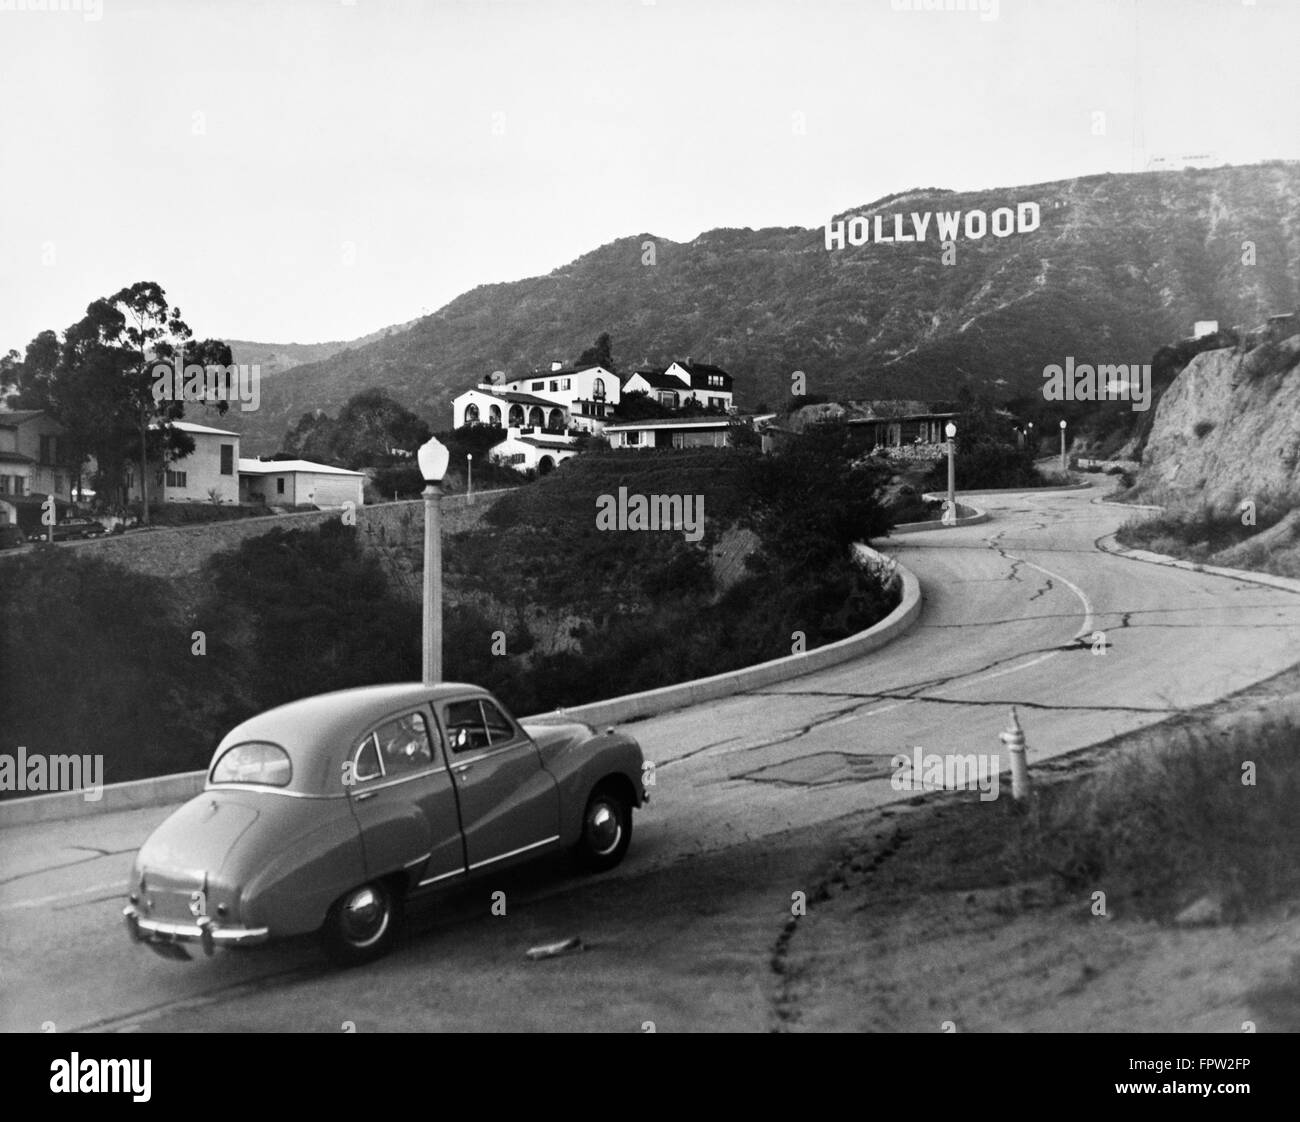 1950s AUSTIN CAR DRIVING UP THE HOLLYWOOD HILLS WITH SIGN IN DISTANCE